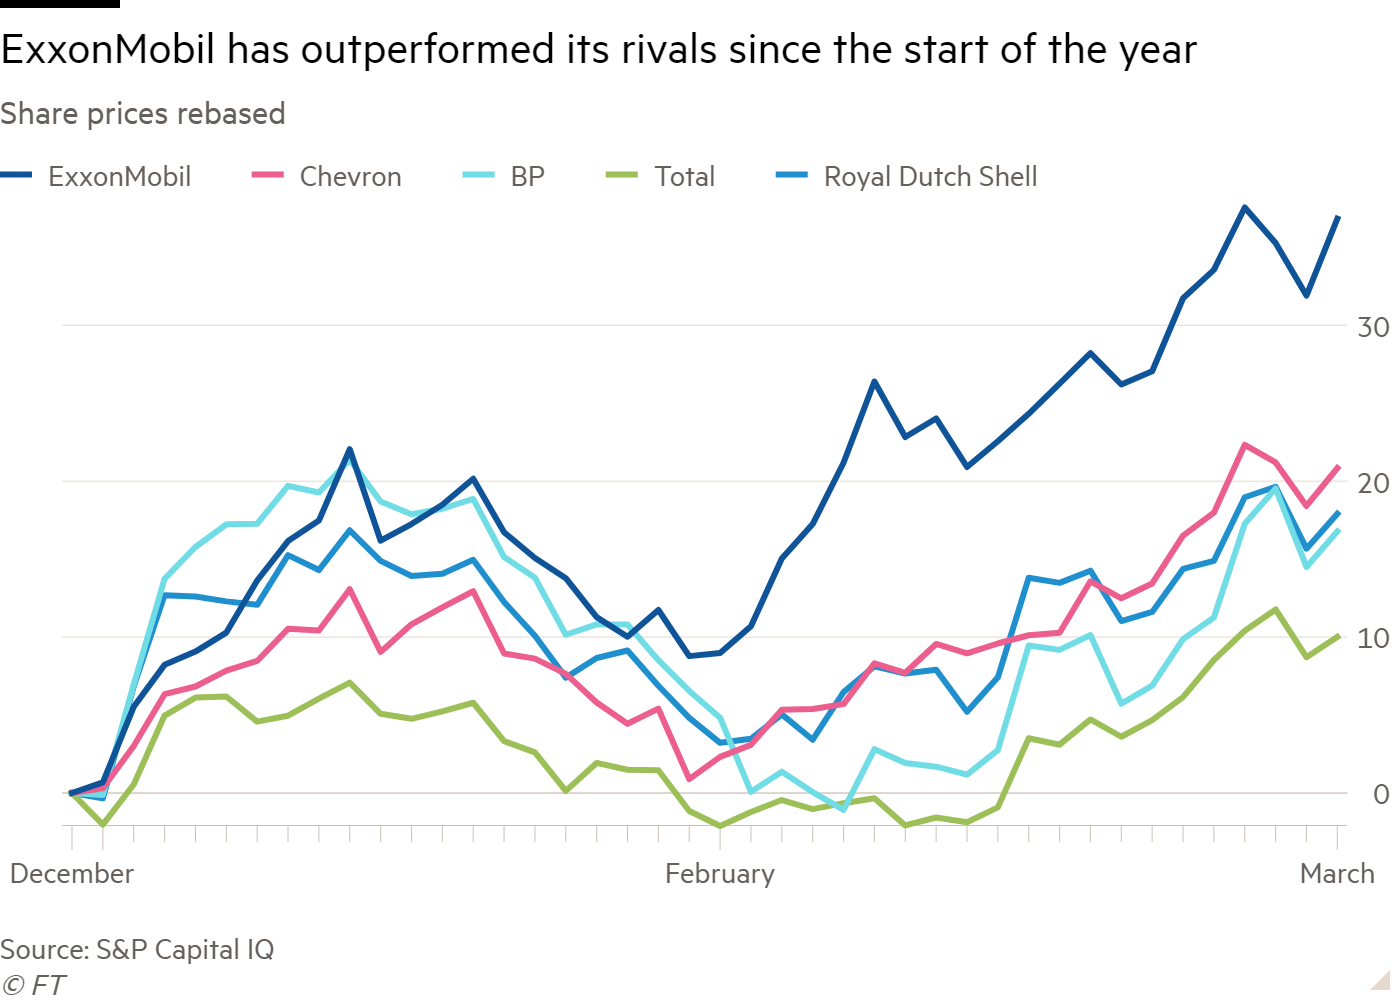 Line chart of Share prices rebased showing ExxonMobil has outperformed its rivals since the start of the year